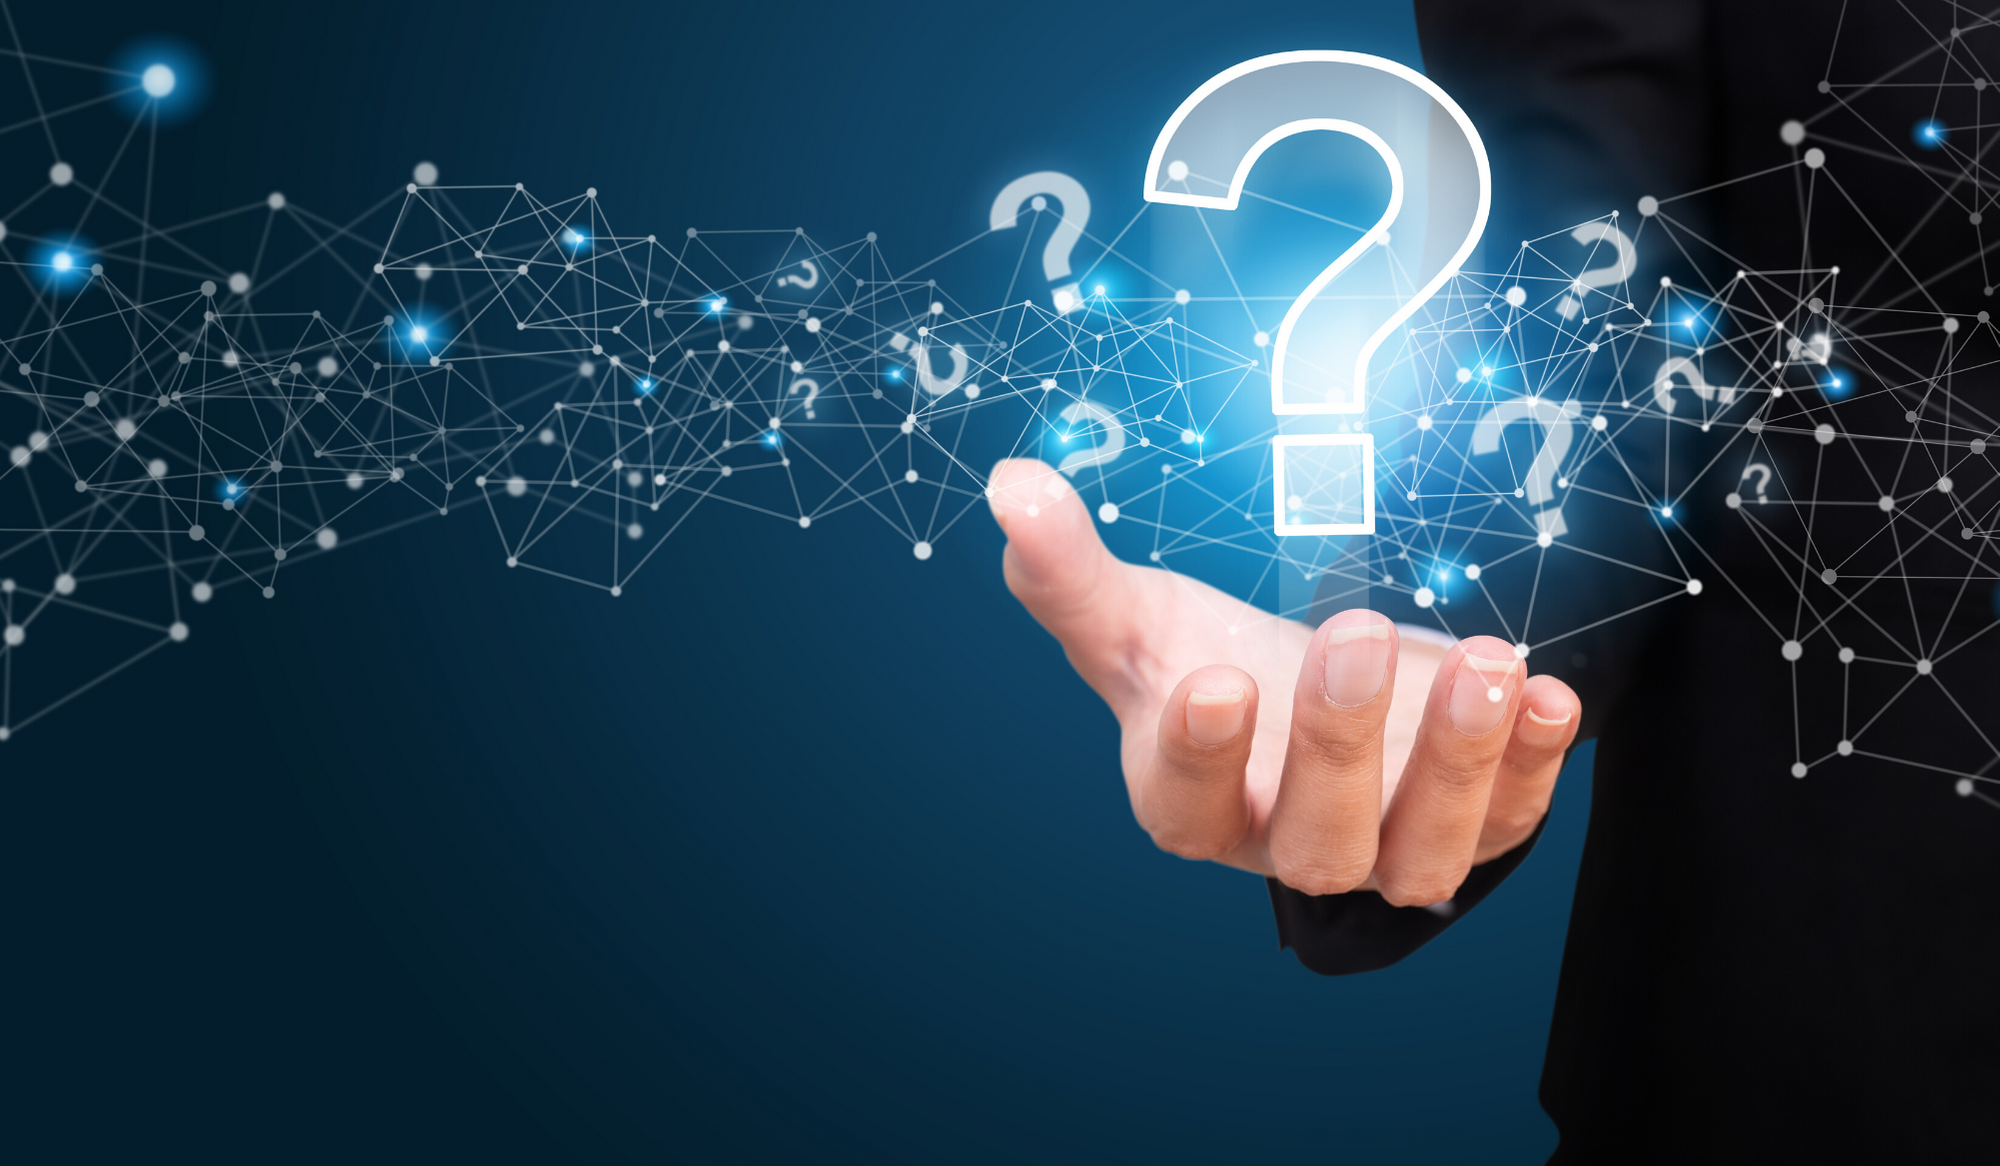 Q&A: Top SEO Questions and Answers